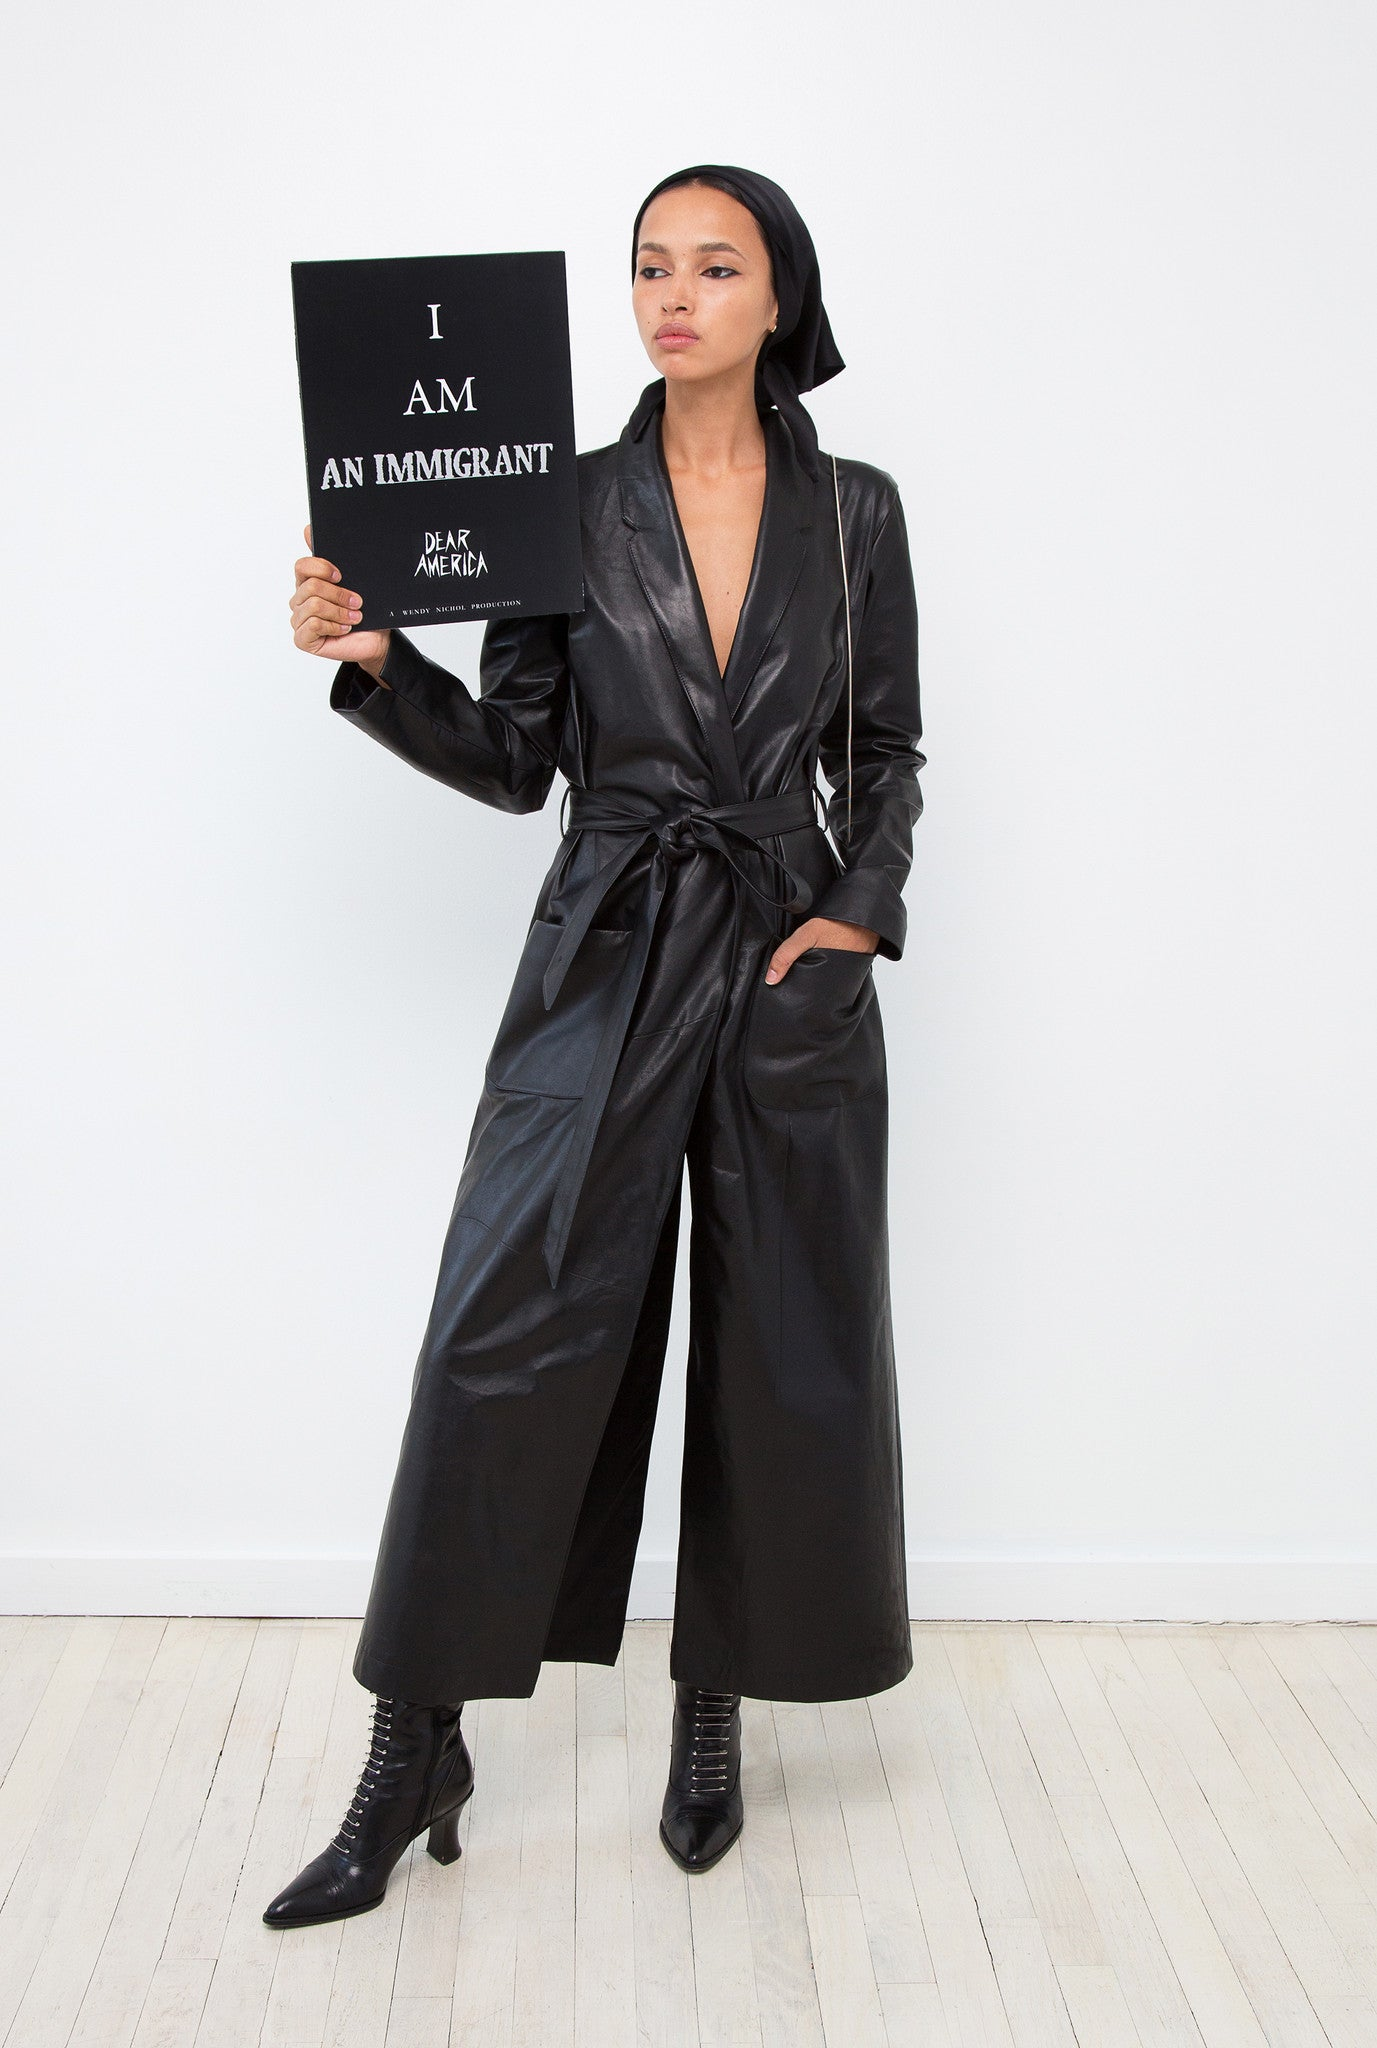 Camila IMG Model Wendy Nichol AW17 Clothing Fashion Anti Fascist Runway Show Dear America Handmade in NYC New York City Protest March I AM Thin Leather Duster Coat Jacket Matrix